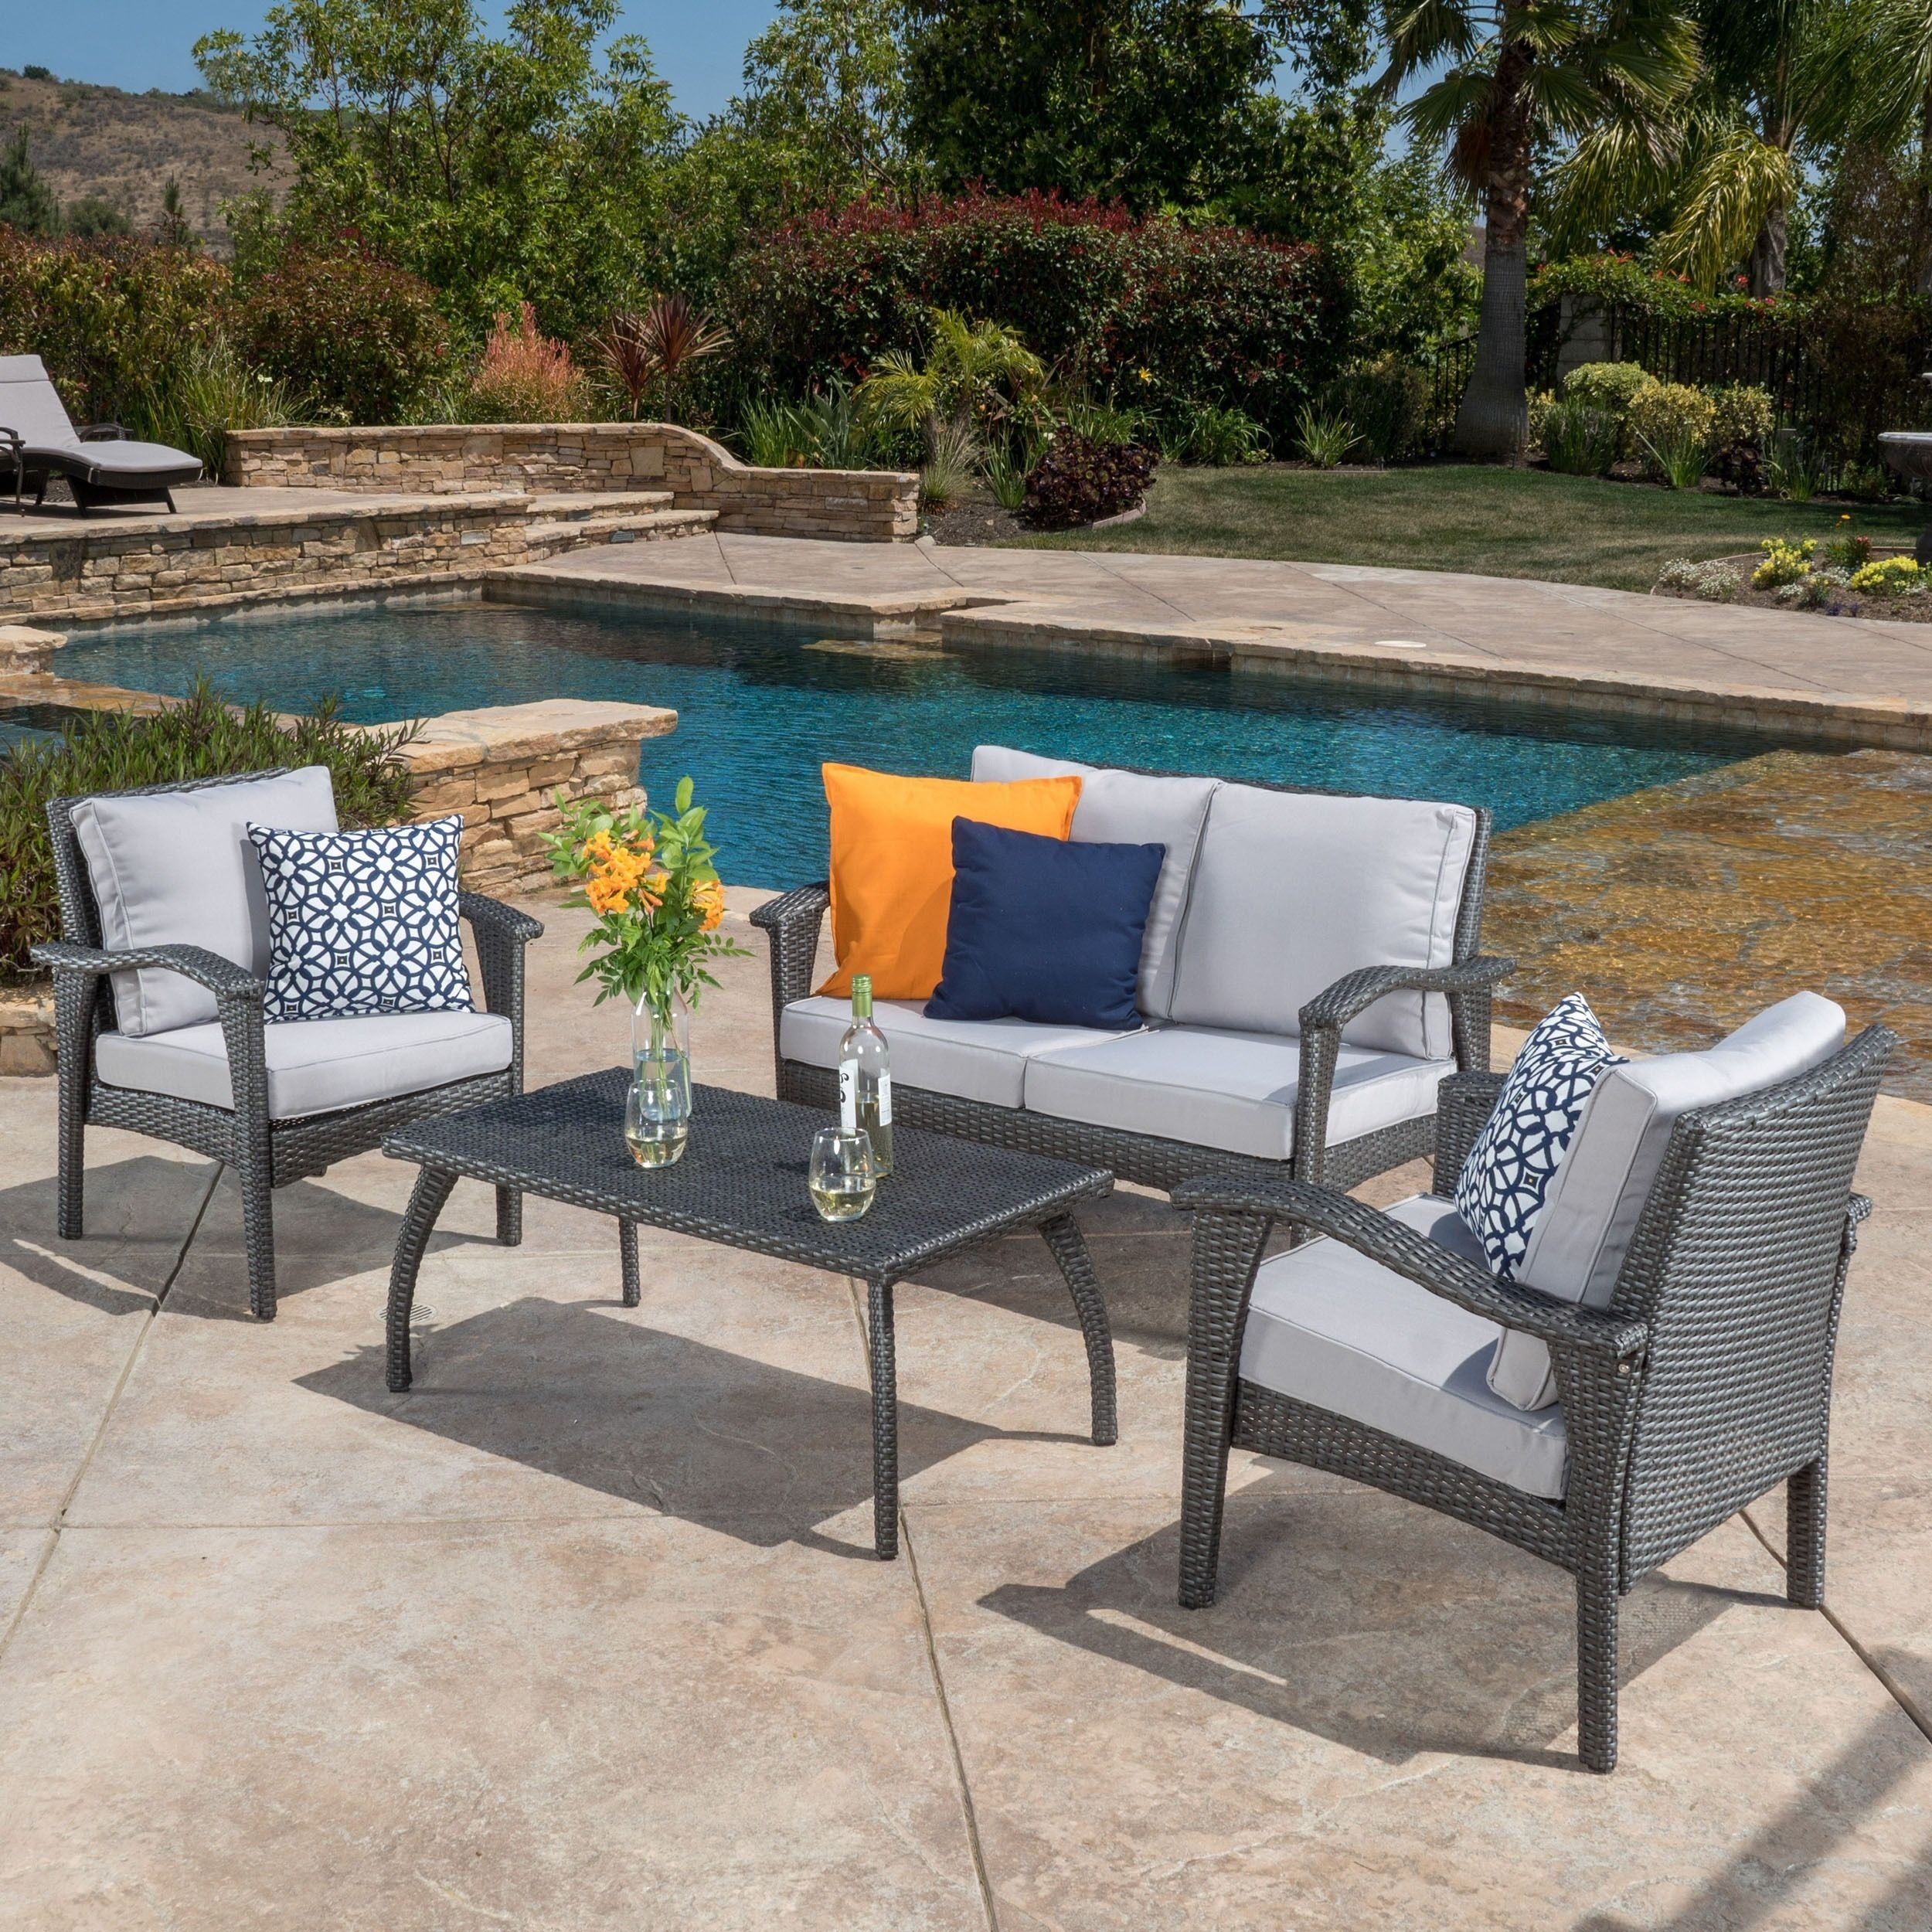 Honolulu Outdoor 4 piece Wicker Seating Set and Cushions by